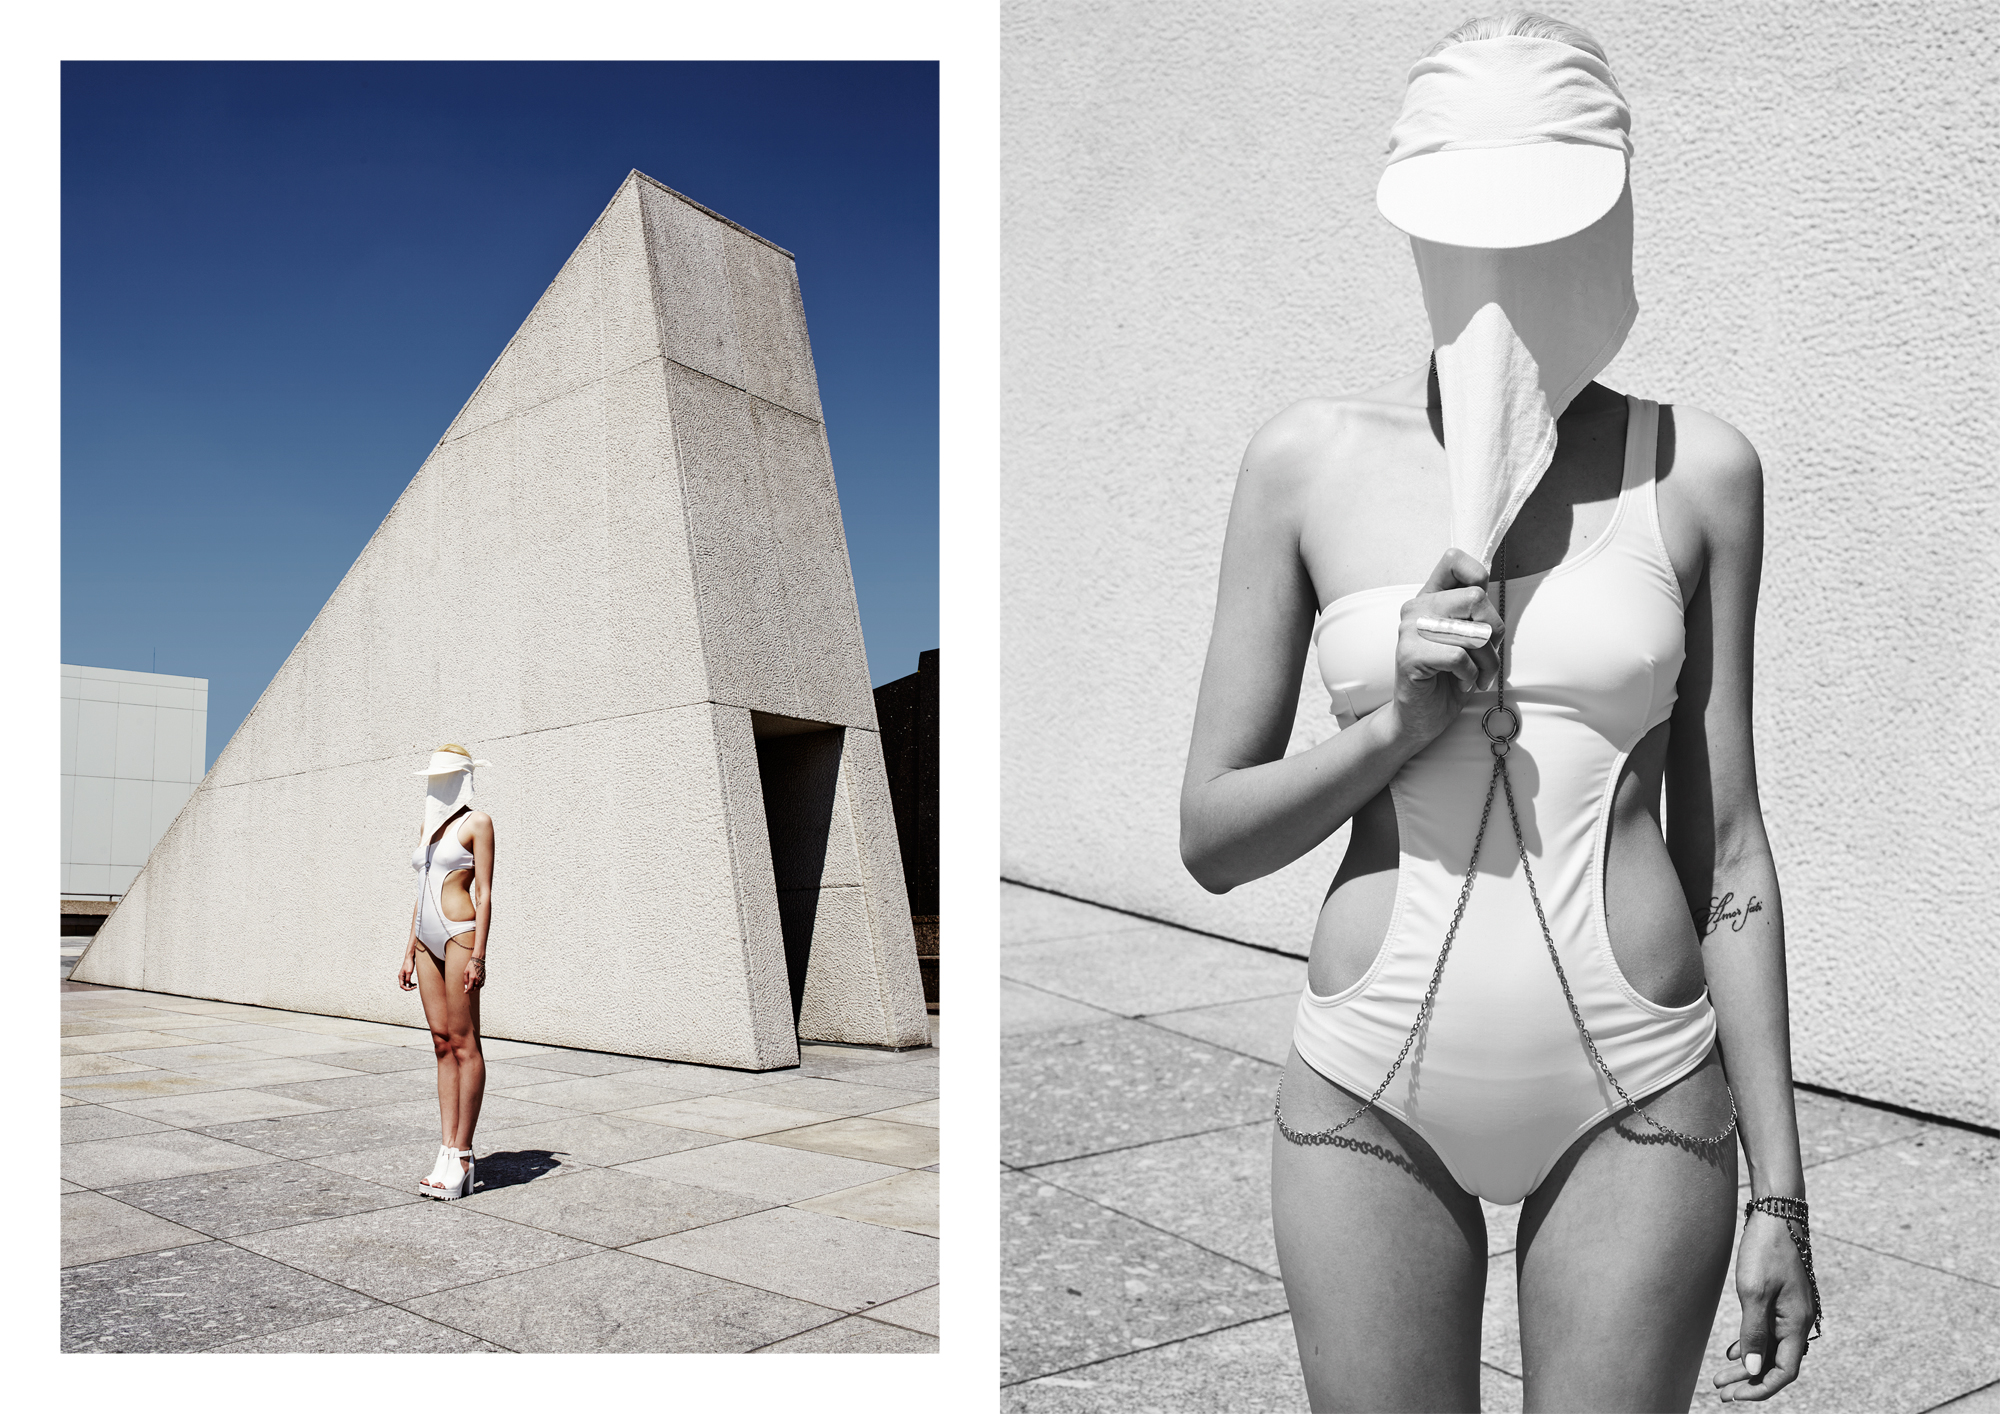 White Therapy by Santiago Perez for CHASSEUR MAGAZINE